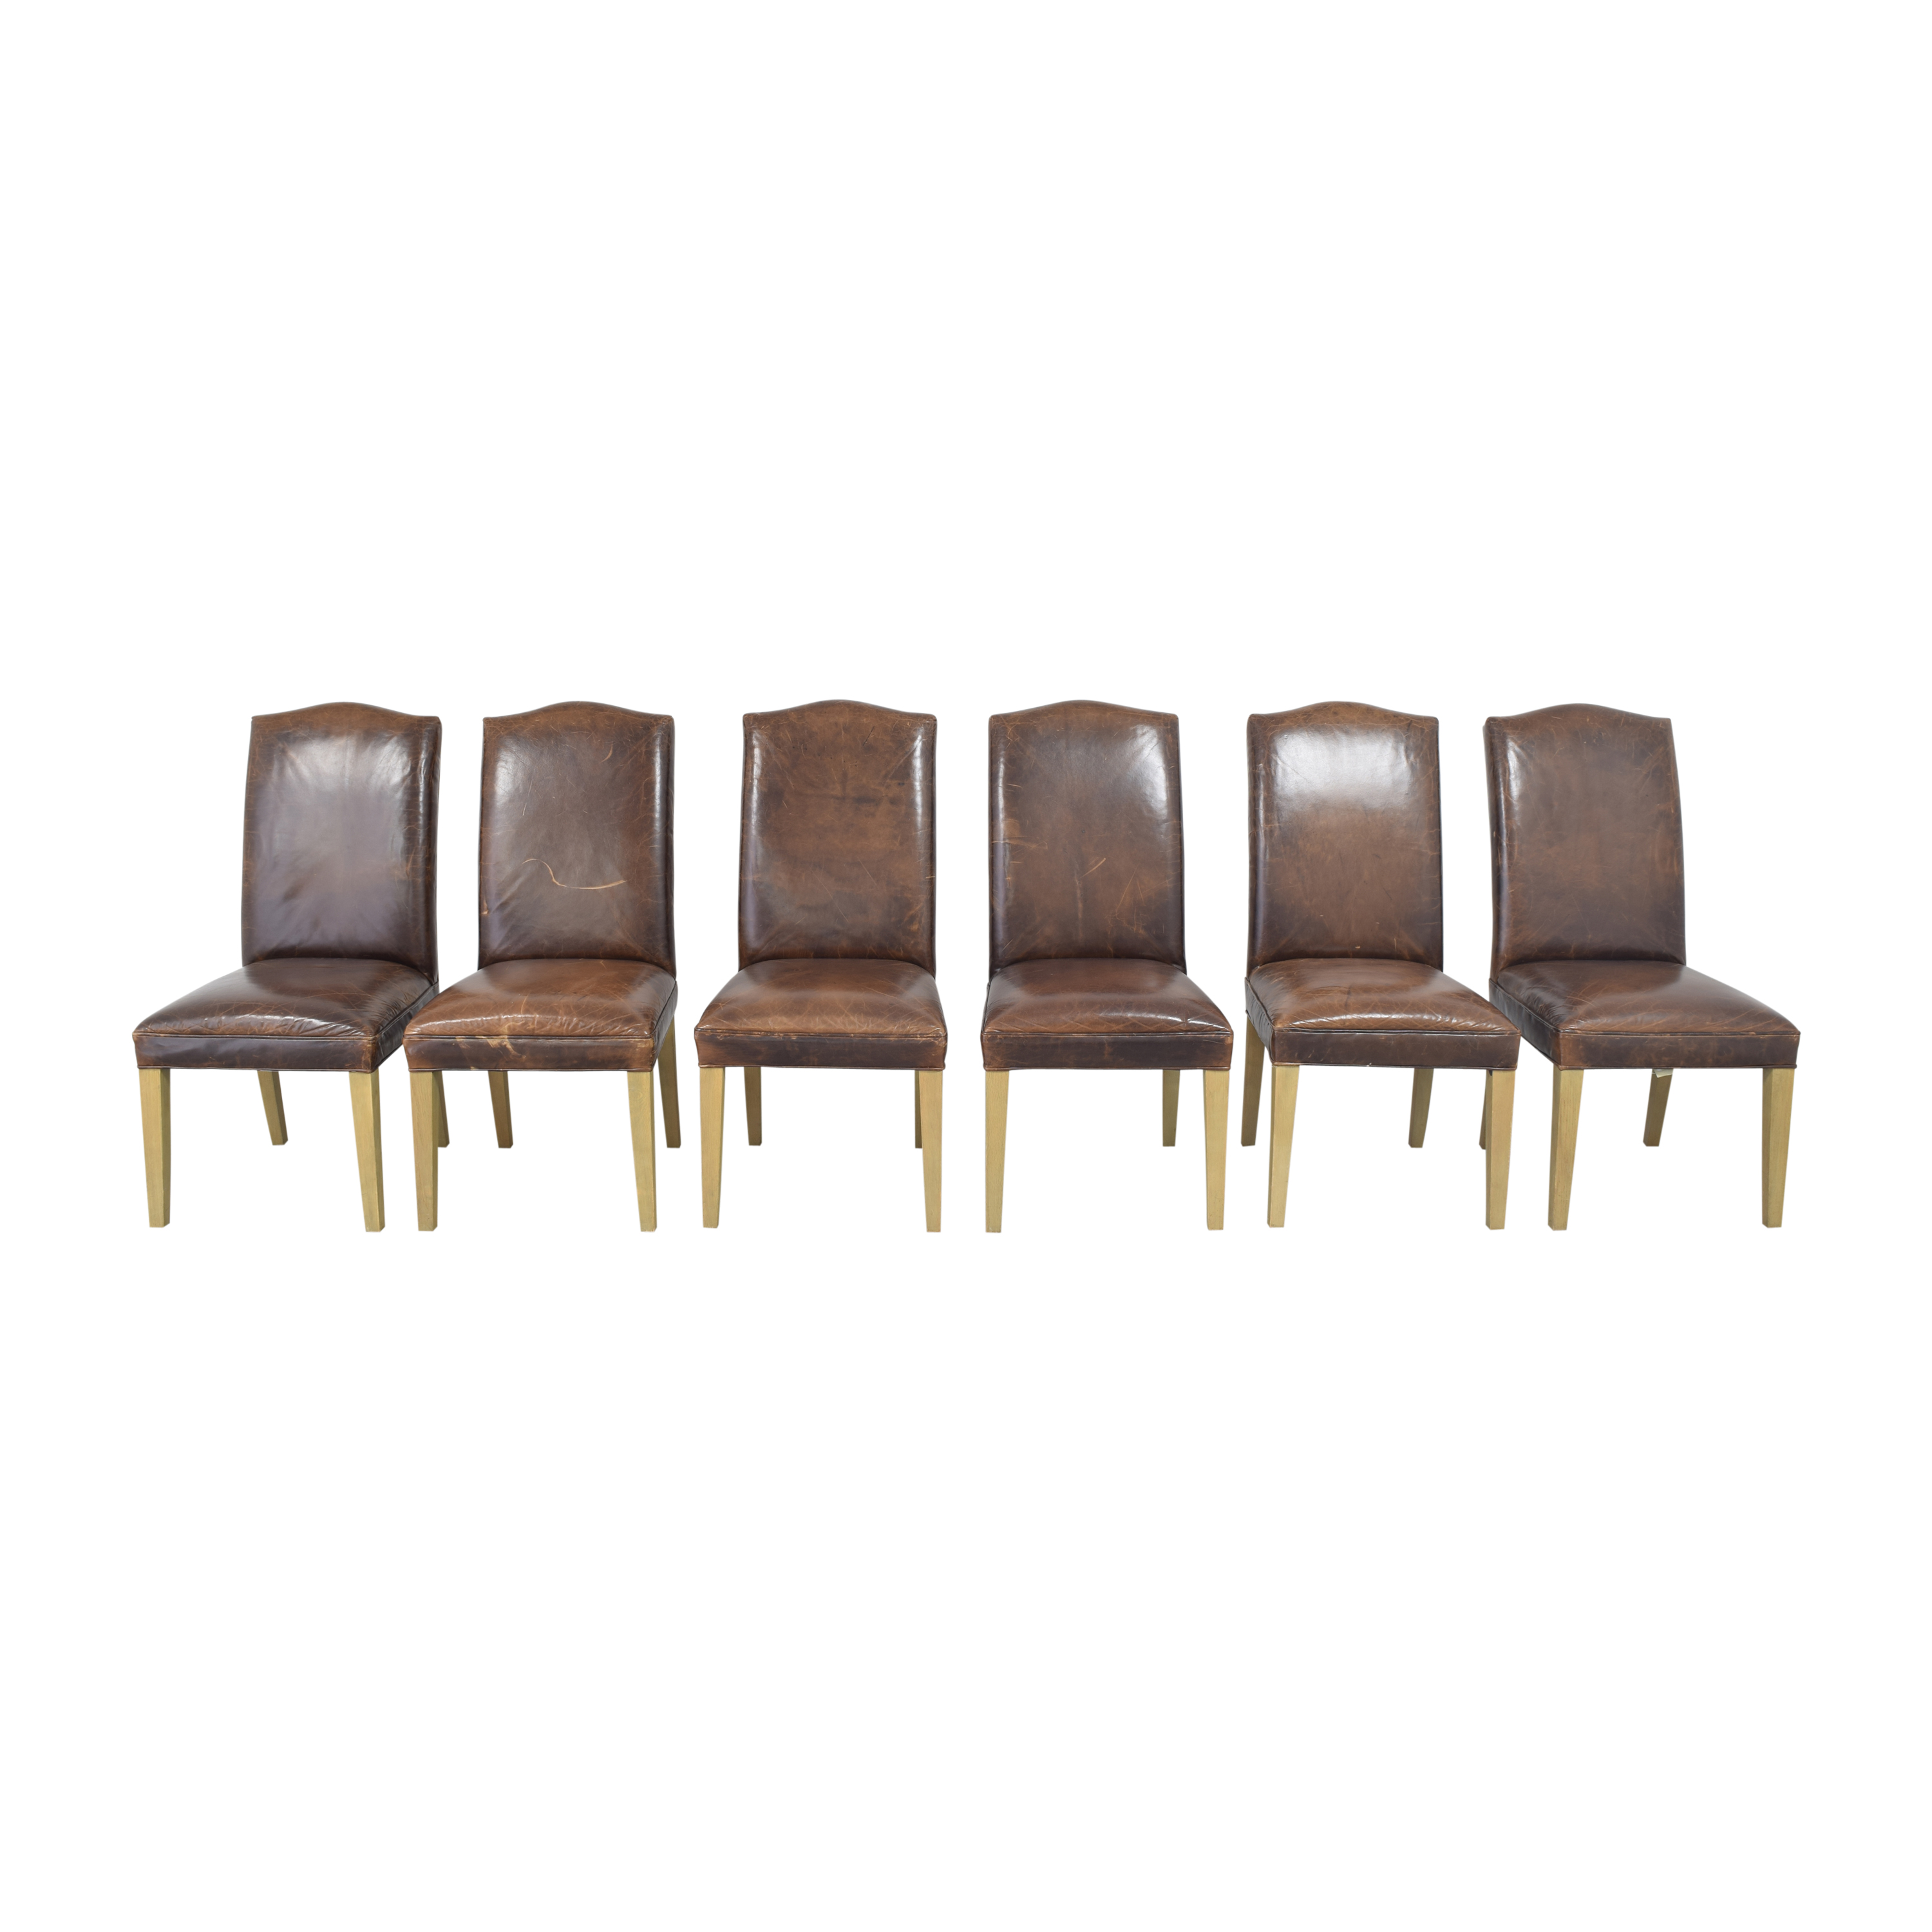 Restoration Hardware Restoration Hardware Hudson Camelback Side Chairs second hand